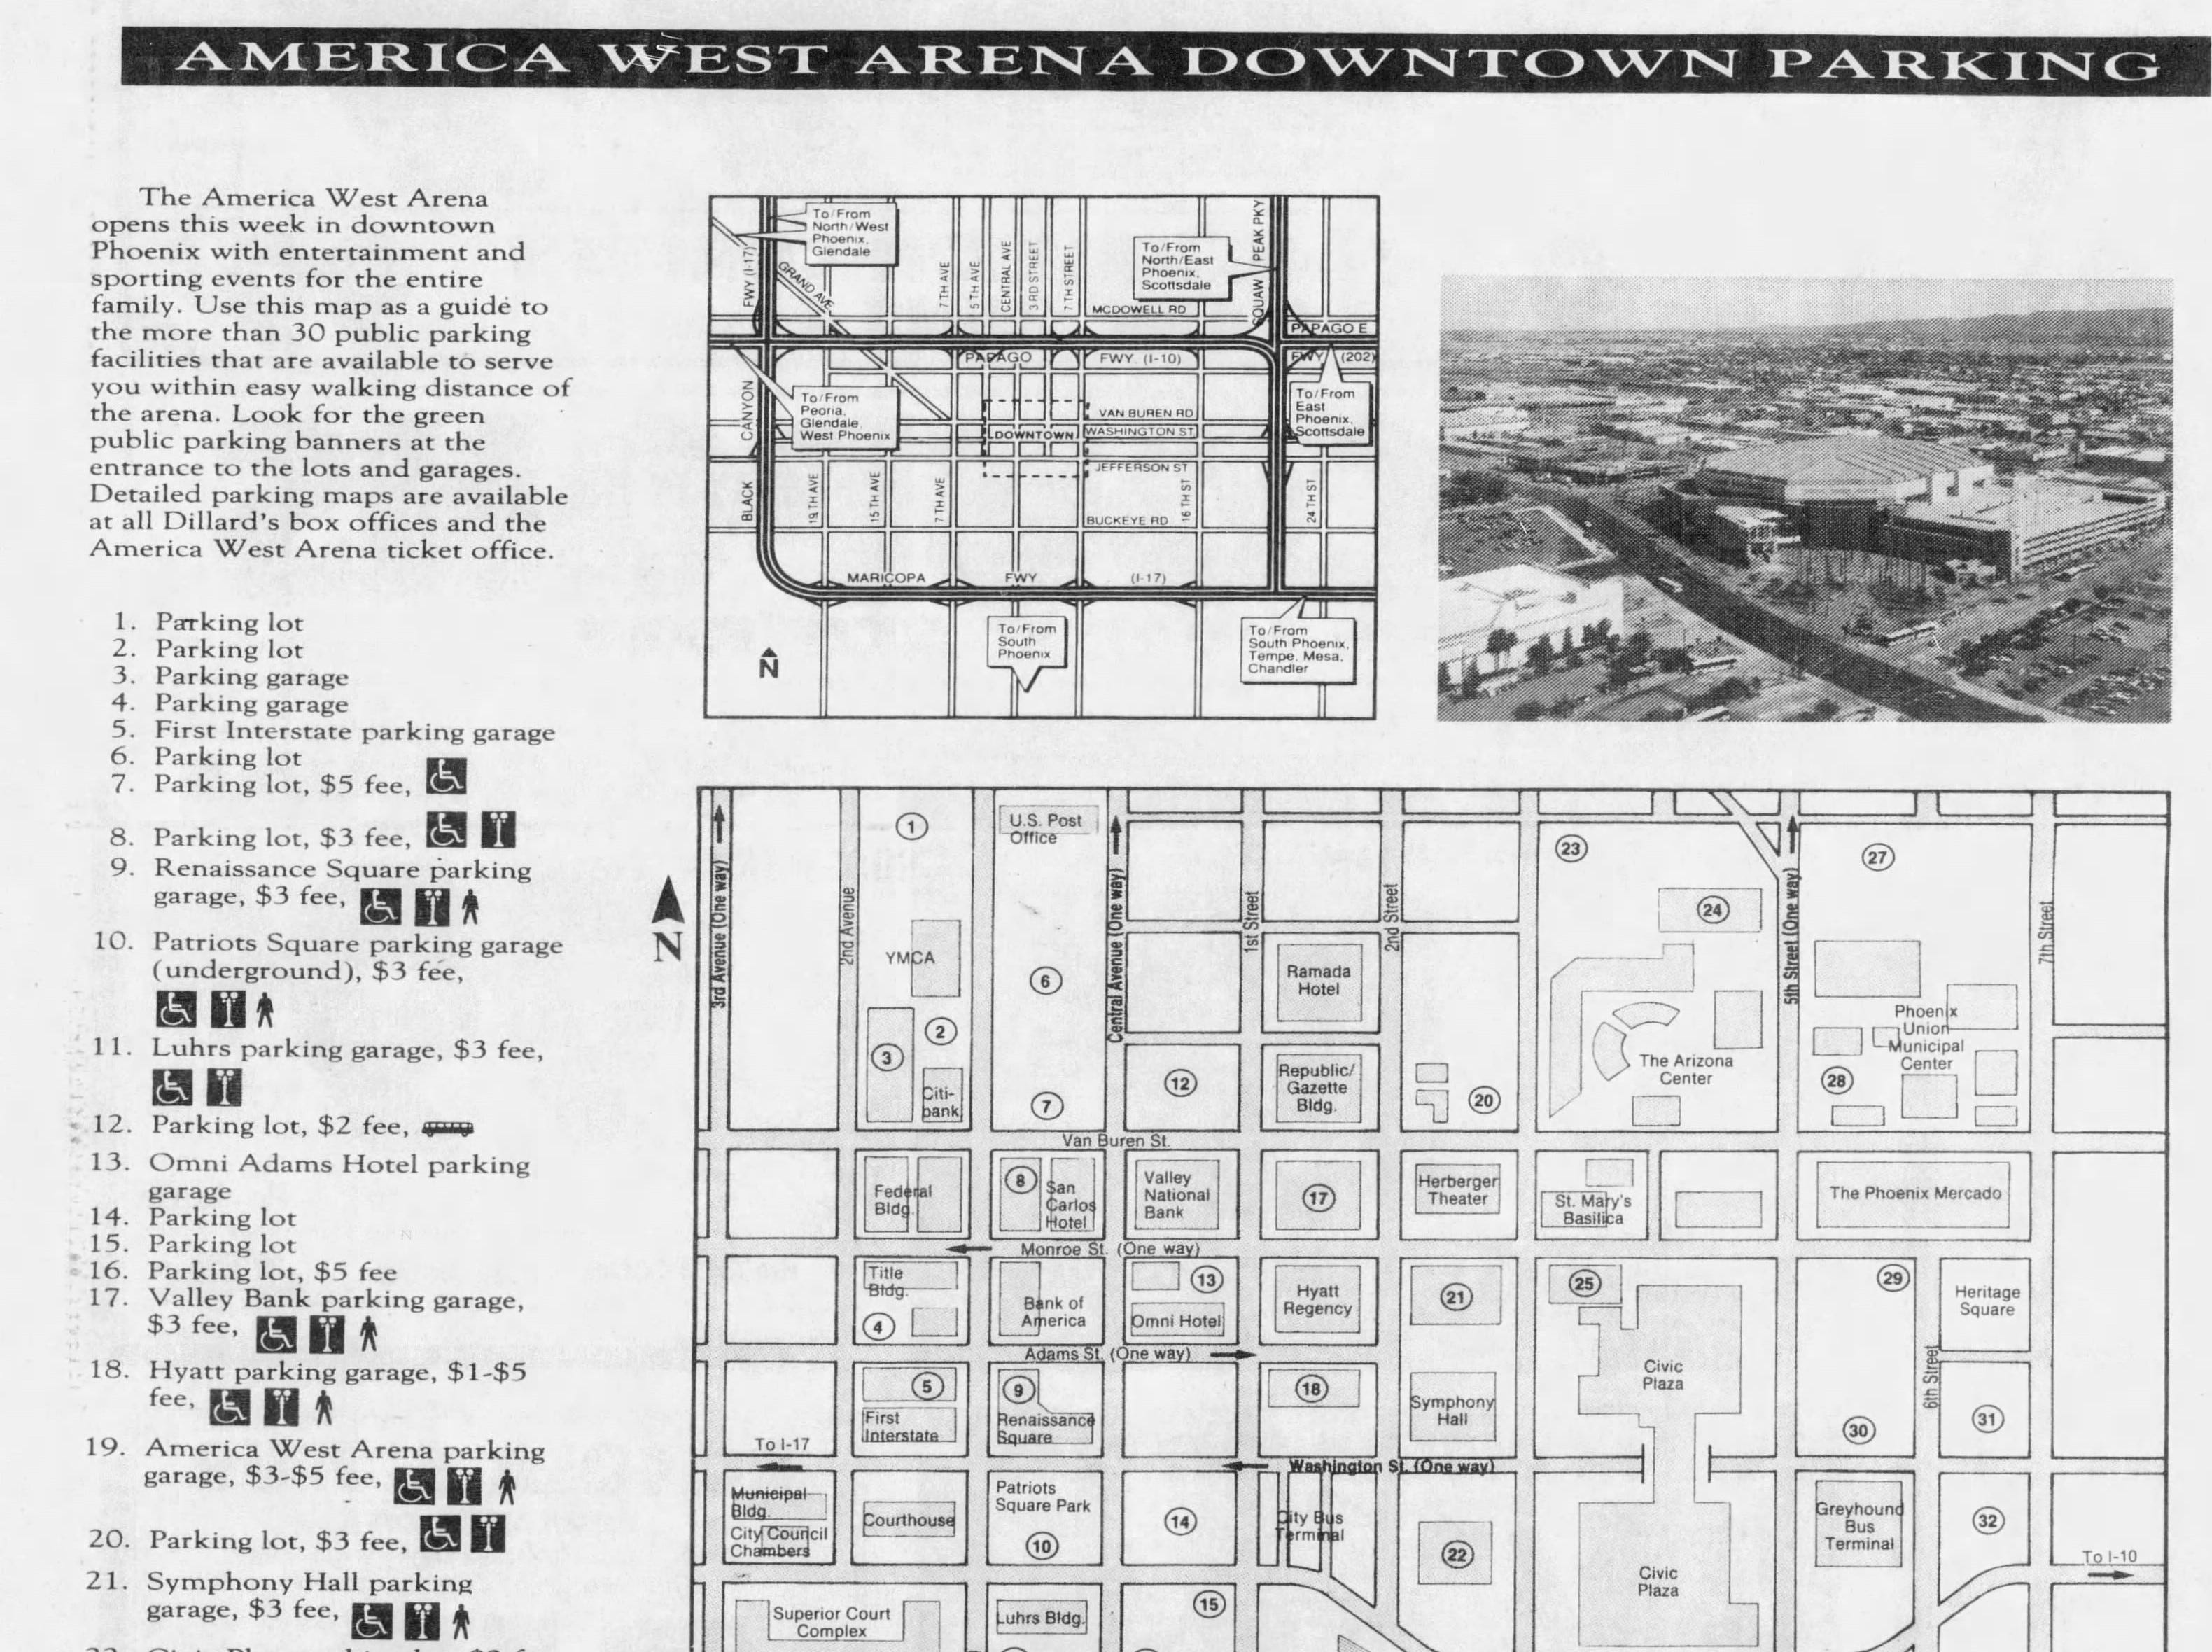 Downtown Phoenix parking had changed a lot by 1992.